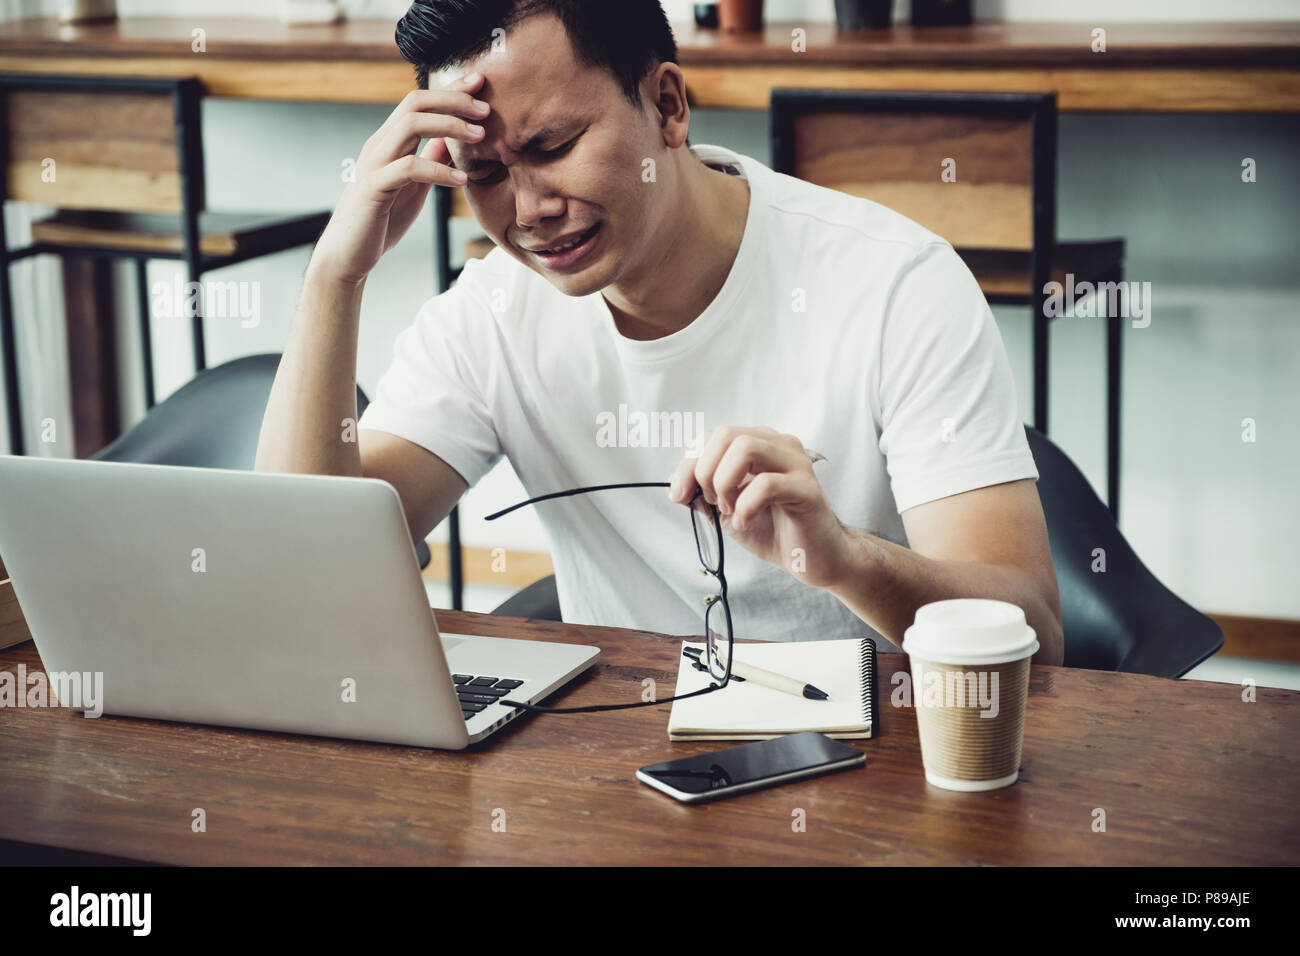 asia casual man cover face with hand upset from work in front of laptop computer in coffee shop,stress emotion concept,work outside office,work at hom - Stock Image